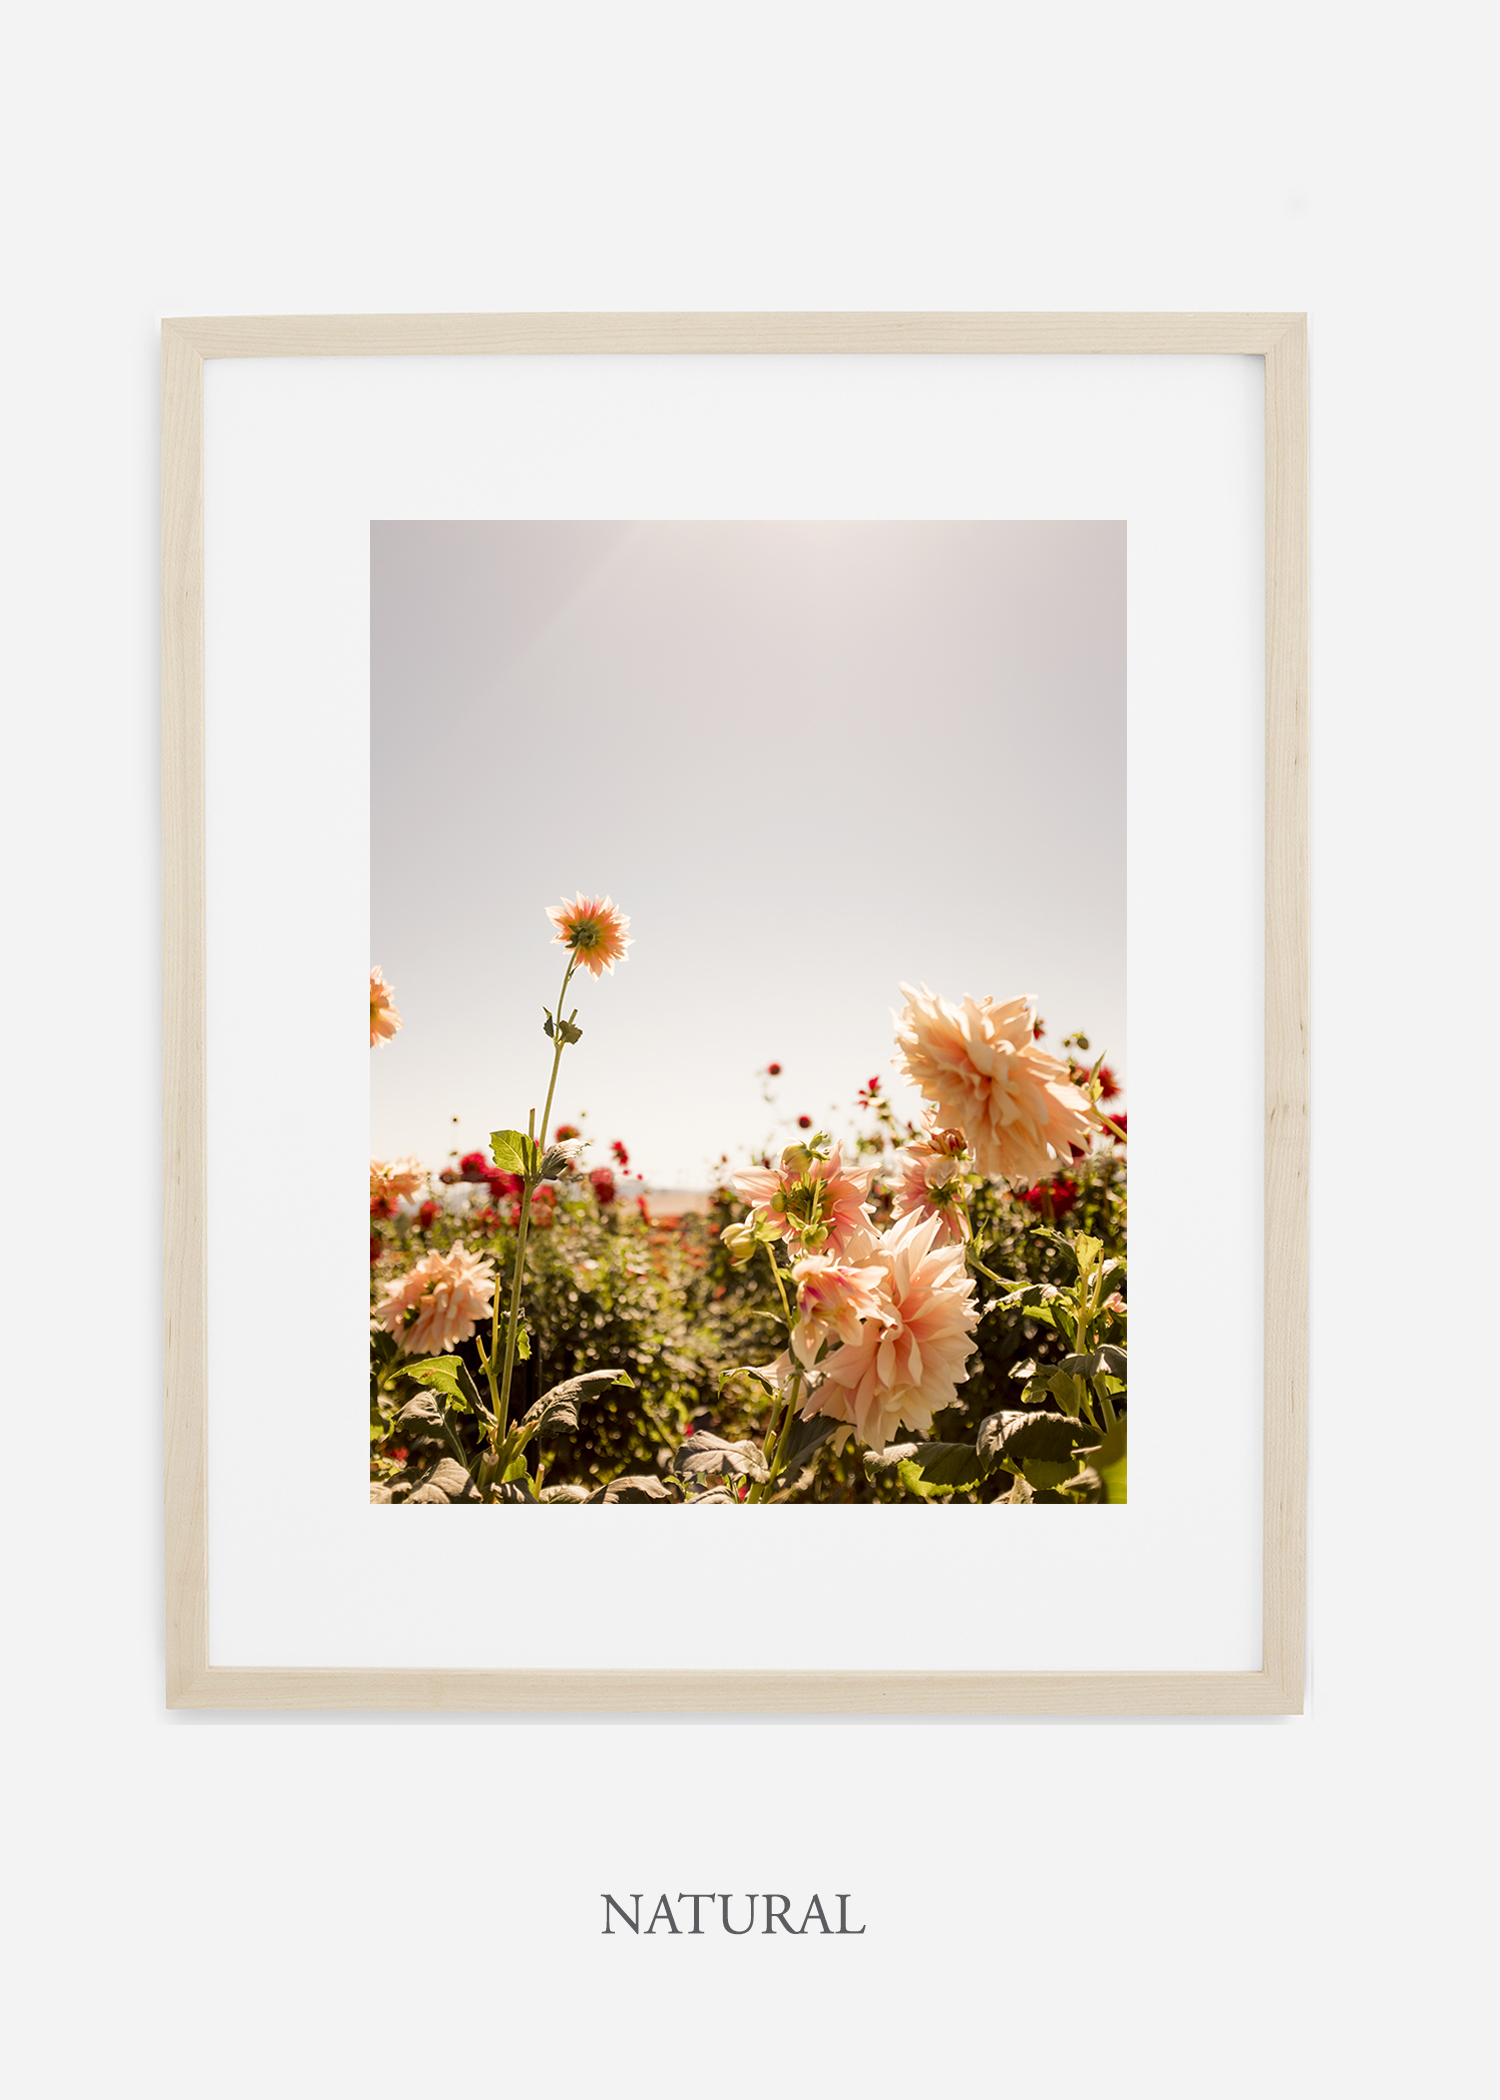 DahliaNo.6-natural-frame-mat-interior-design-botanical-print-art-wilder-california-wilder-paper.jpg